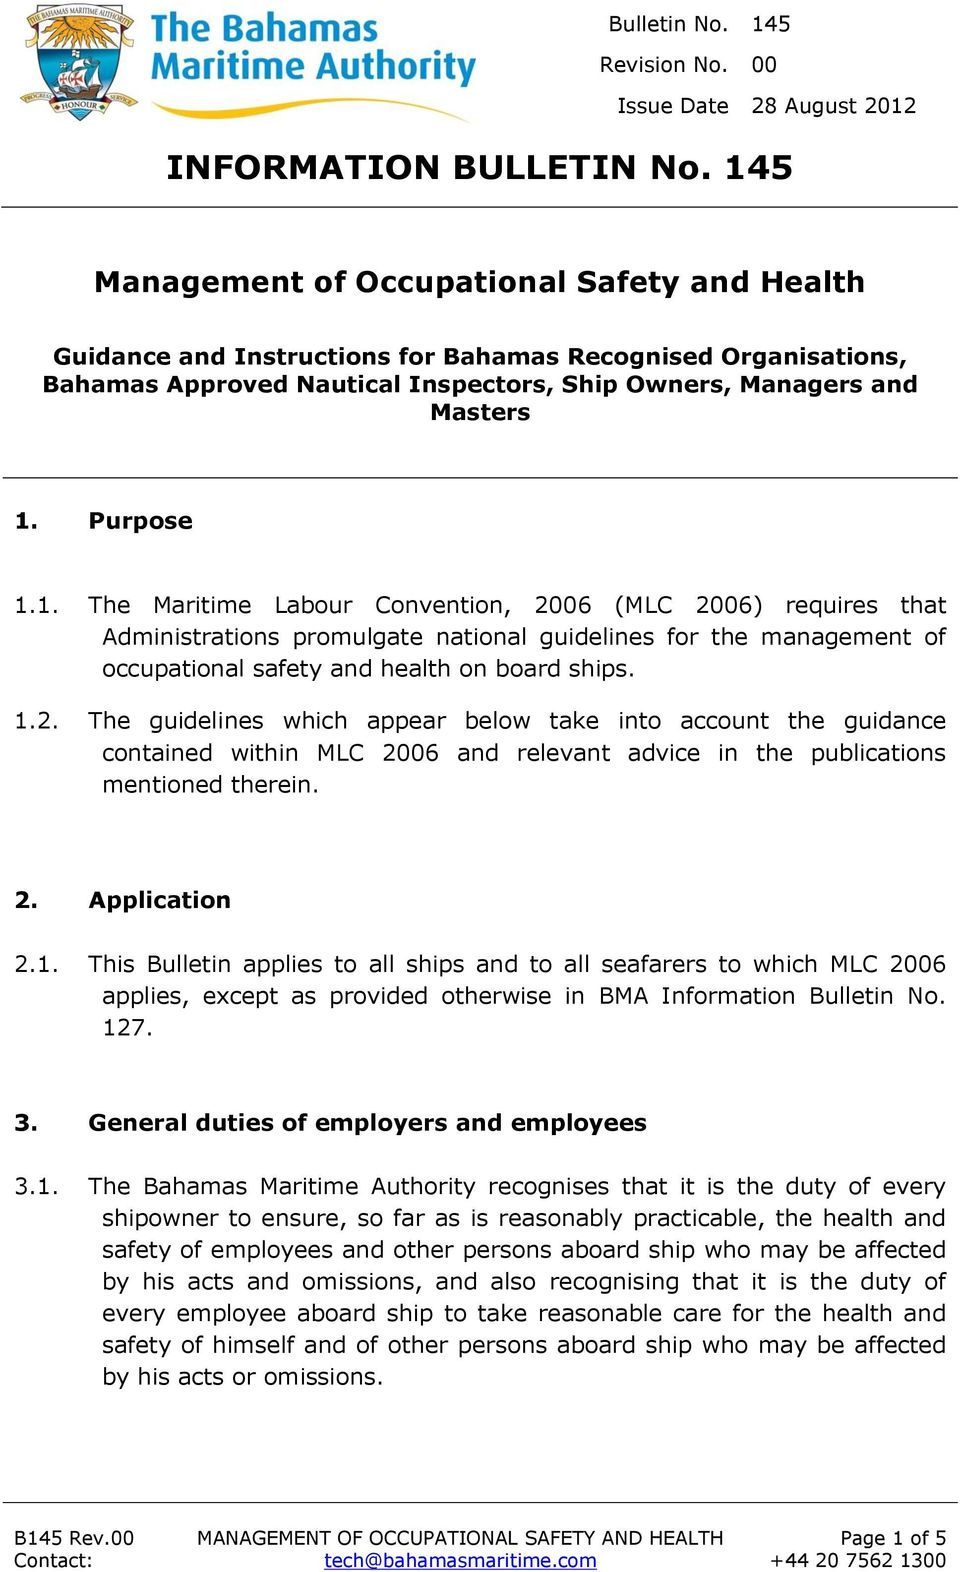 1.2. The guidelines which appear below take into account the guidance contained within MLC 2006 and relevant advice in the publications mentioned therein. 2. Application 2.1. This Bulletin applies to all ships and to all seafarers to which MLC 2006 applies, except as provided otherwise in BMA Information Bulletin No.